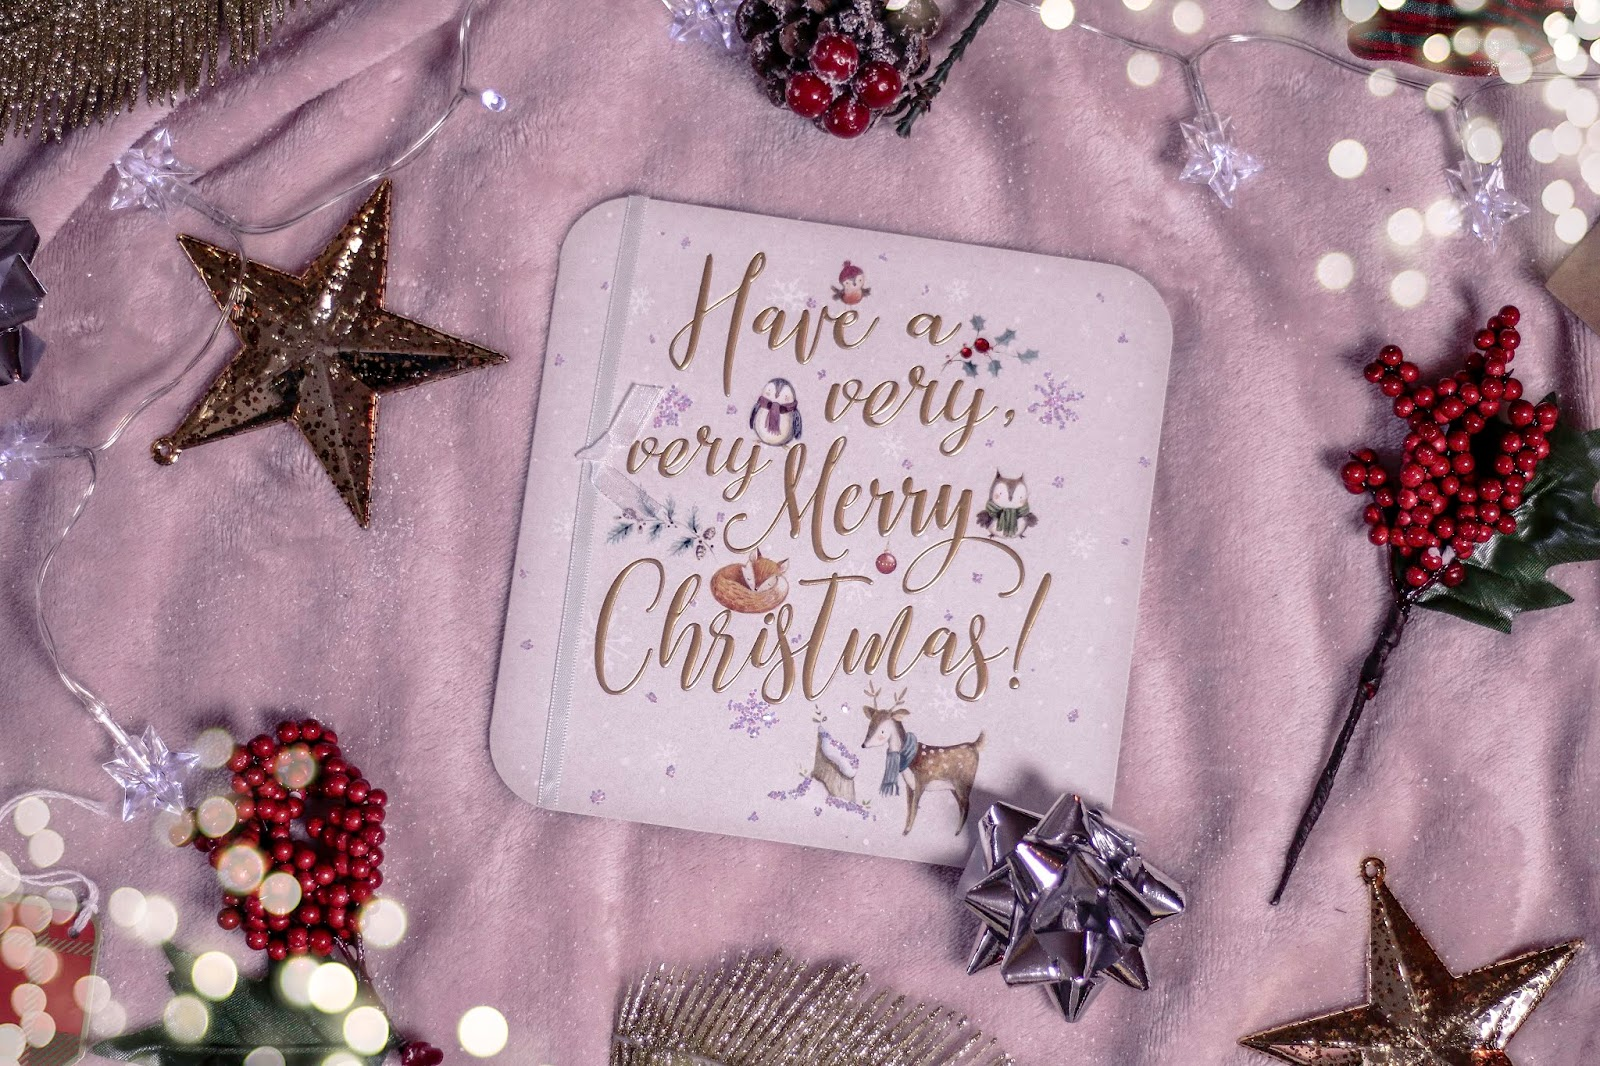 "Close up of a Christmas card that says ""Have a very very merry Christmas"" on the front in gold with little drawings of a penguin, robin and deer on the front. The card has a white background and white ribbon running down the front with a bow. The card is on a pink blanket with gold and silver christmas decorations surrounding the card. A flat lay photo taken from directly above."